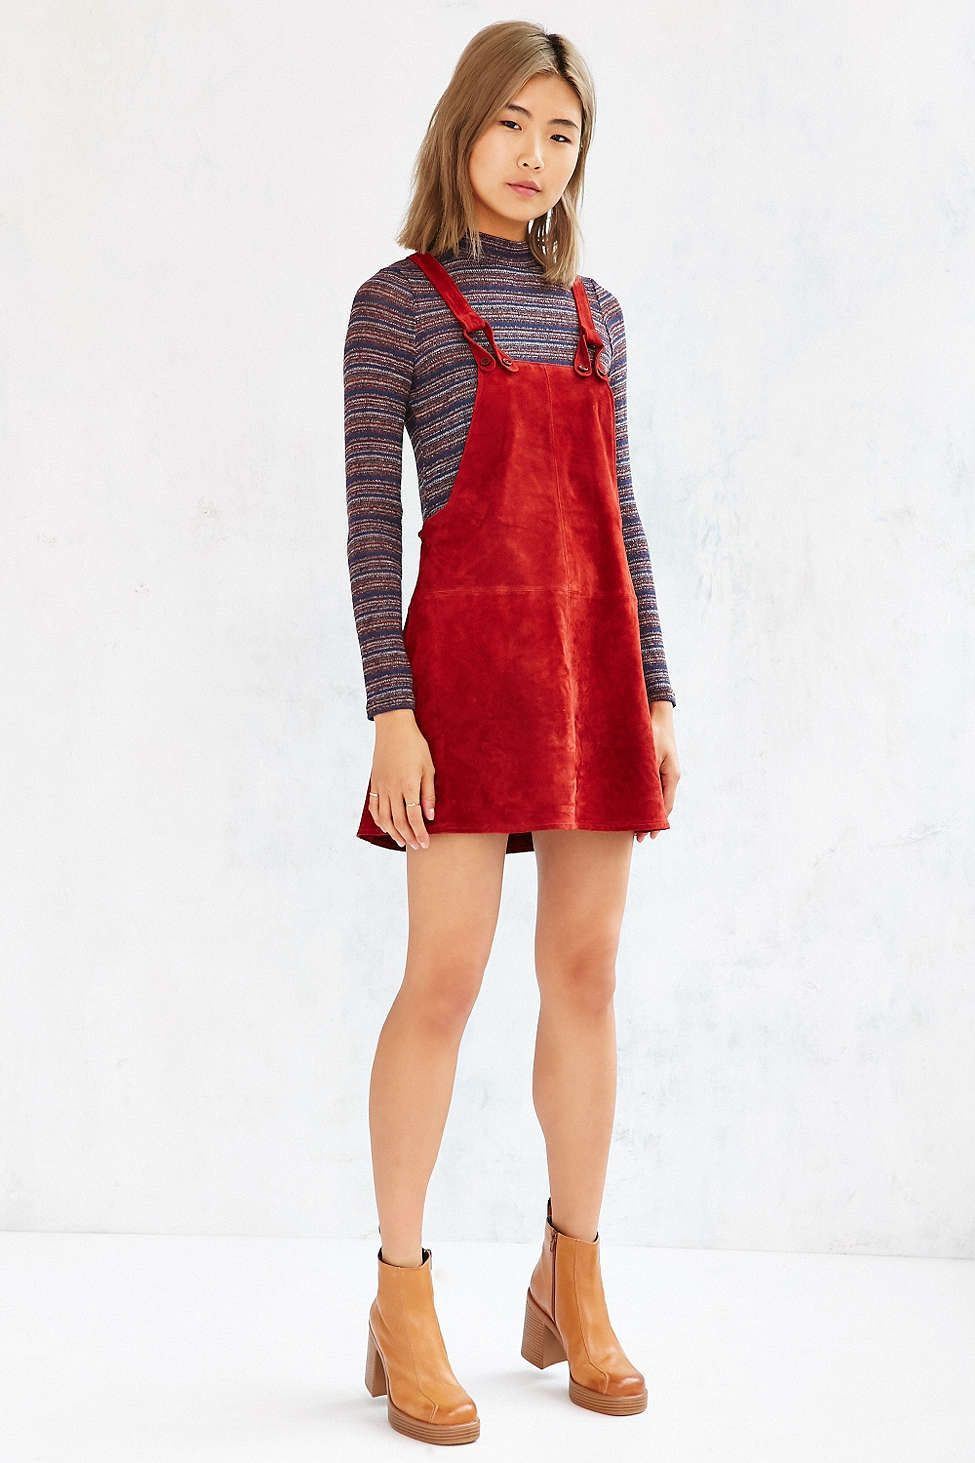 Cooperative Brandy Suede Overall Dress Urban Outfitters Dresses Pinterest Urban